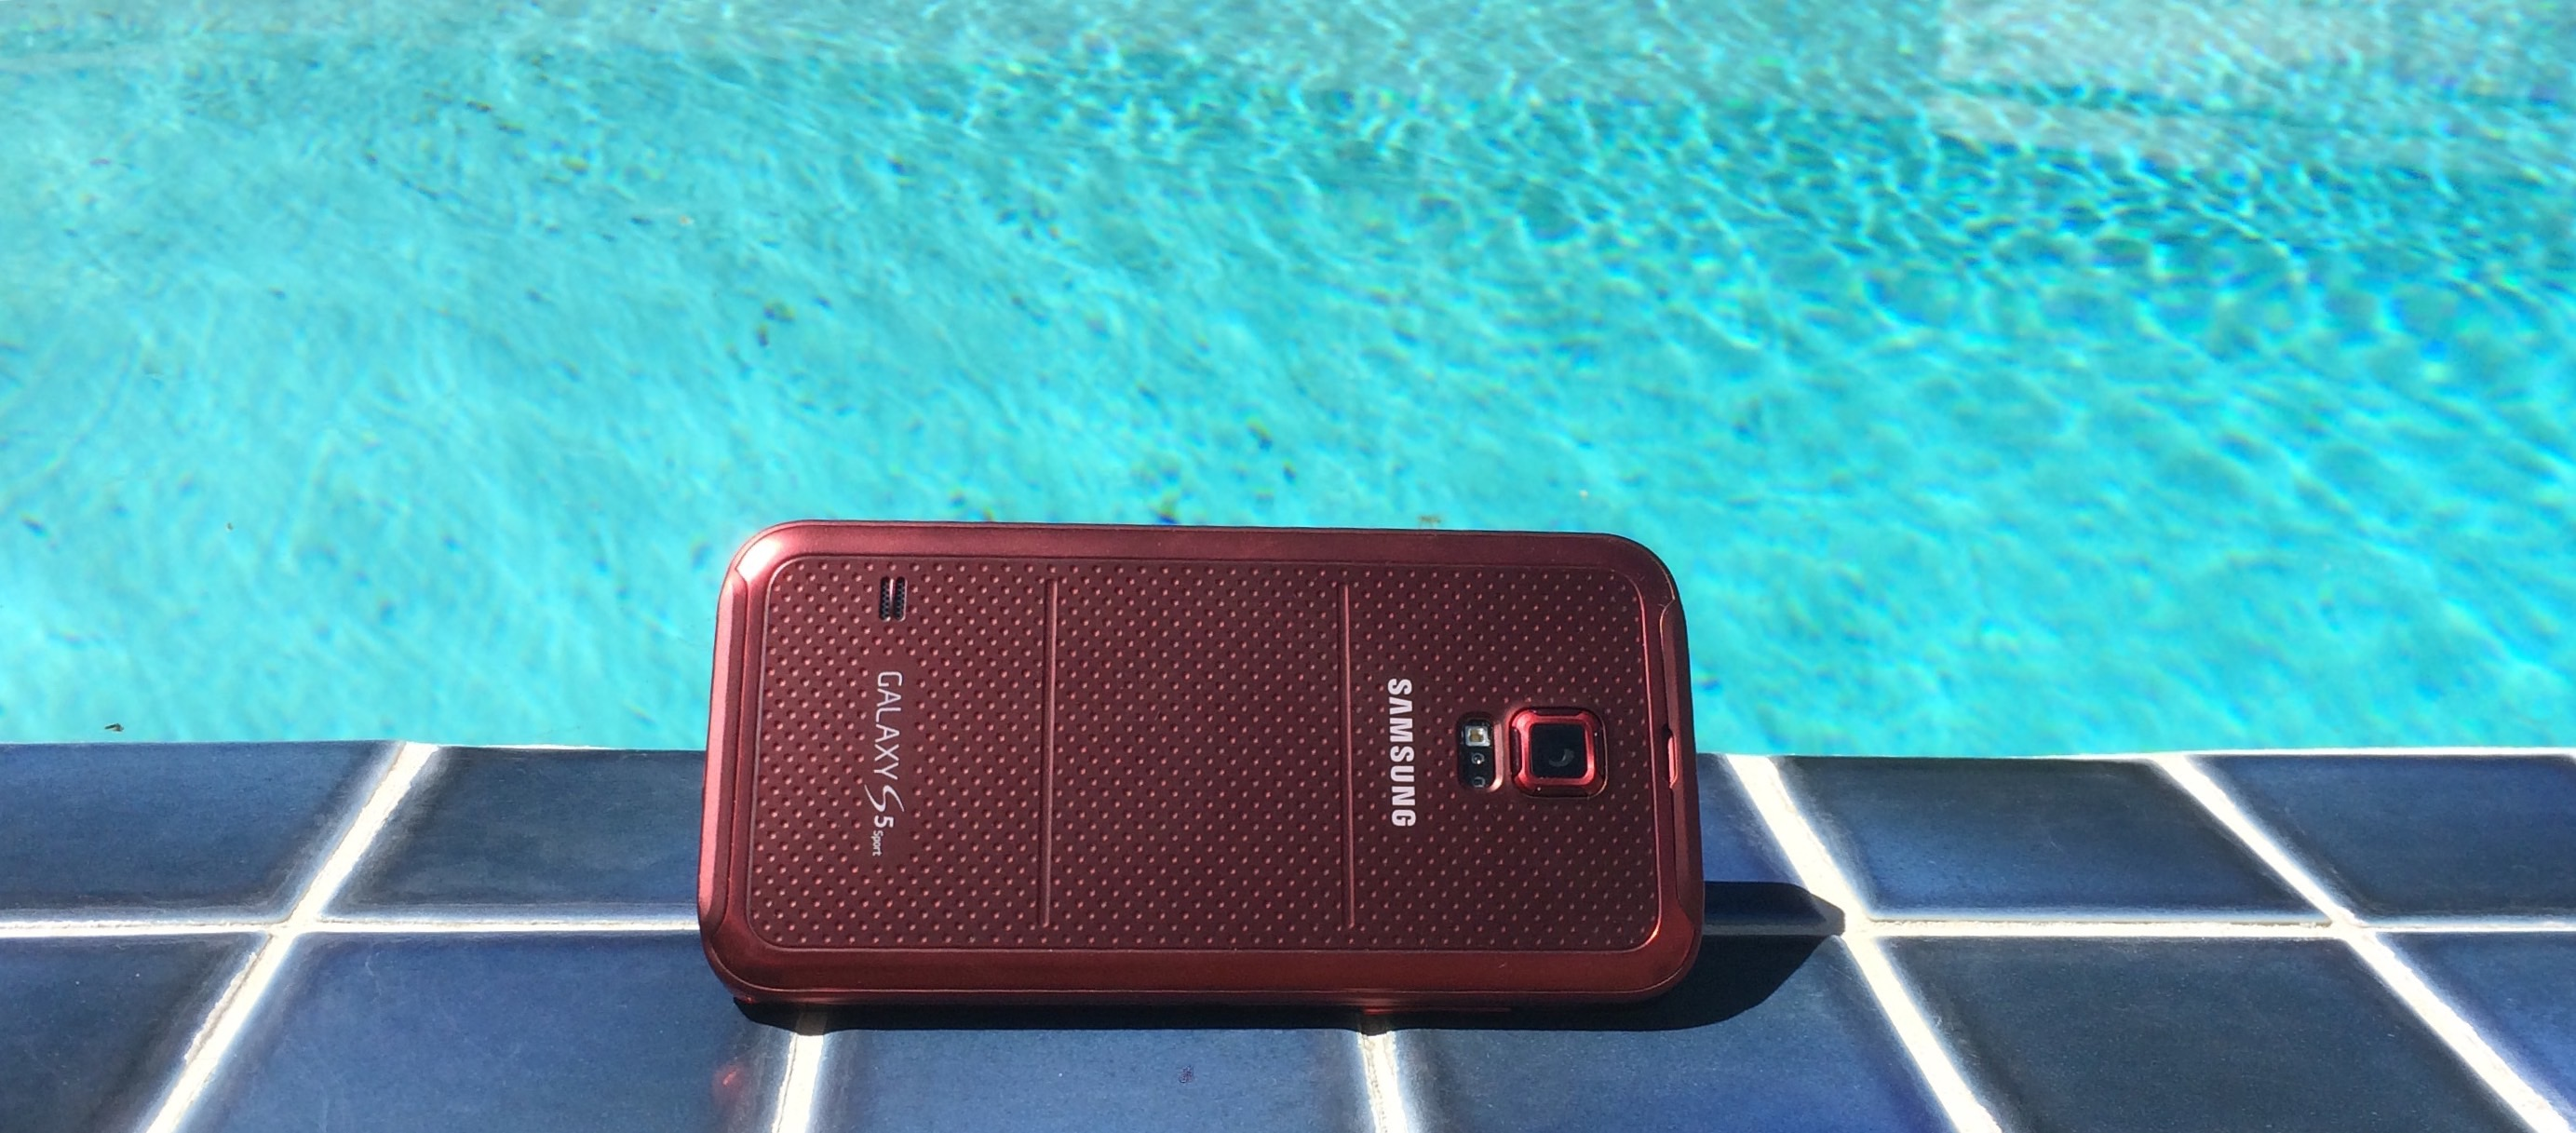 Hands-on with Sprint's Fitness-Focused Galaxy S5 Sport